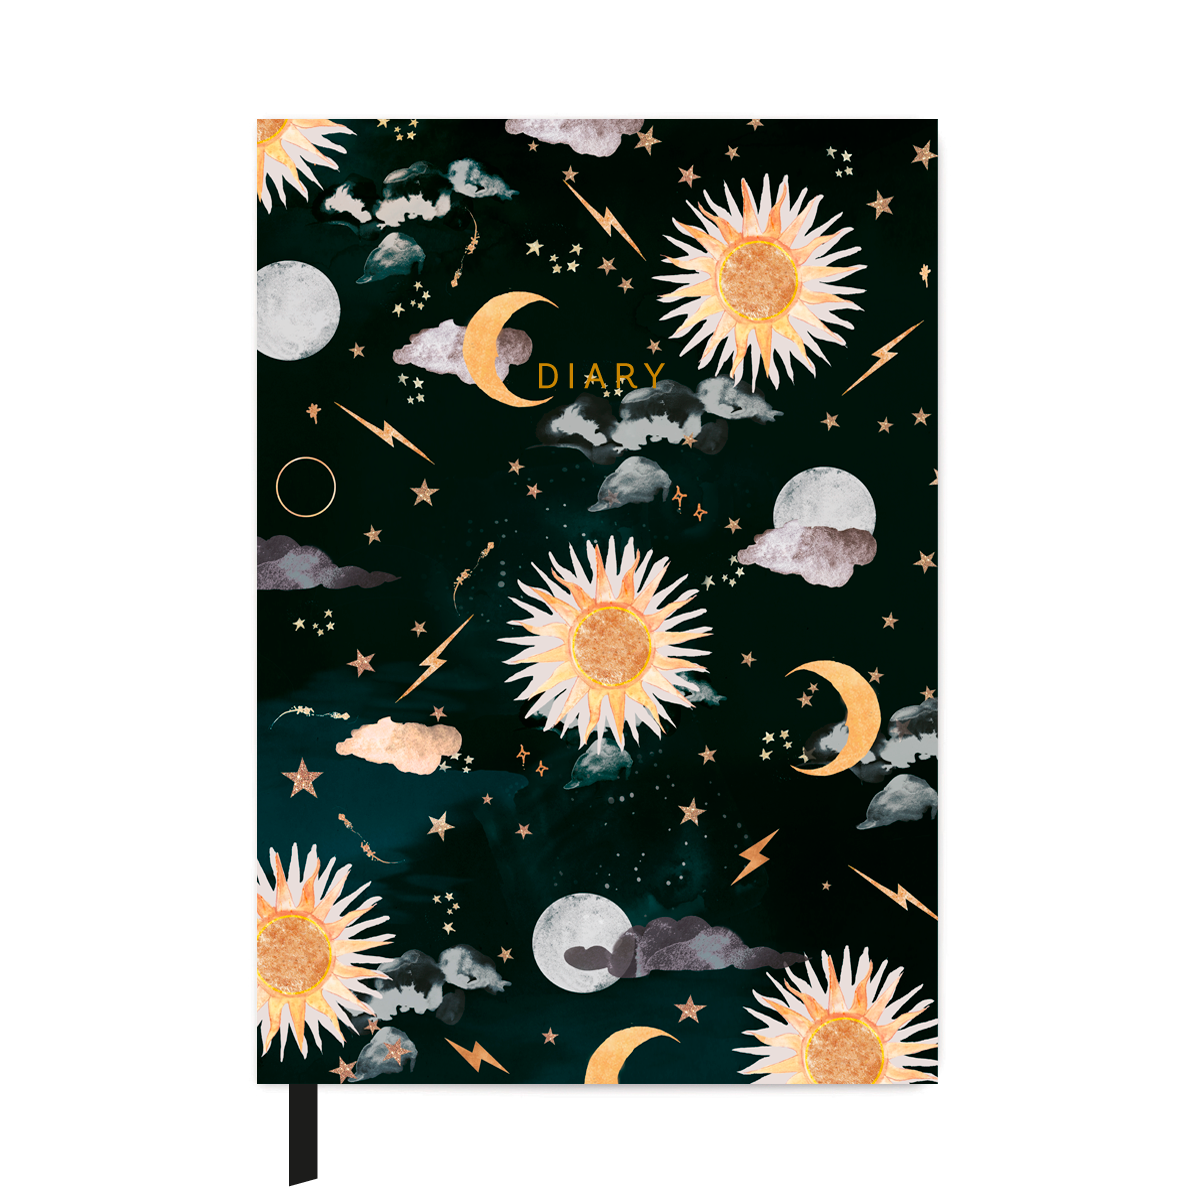 NIKKI STRANGE A5 Special Edition Mid Year Diary 2020/21 - Solis & Luna